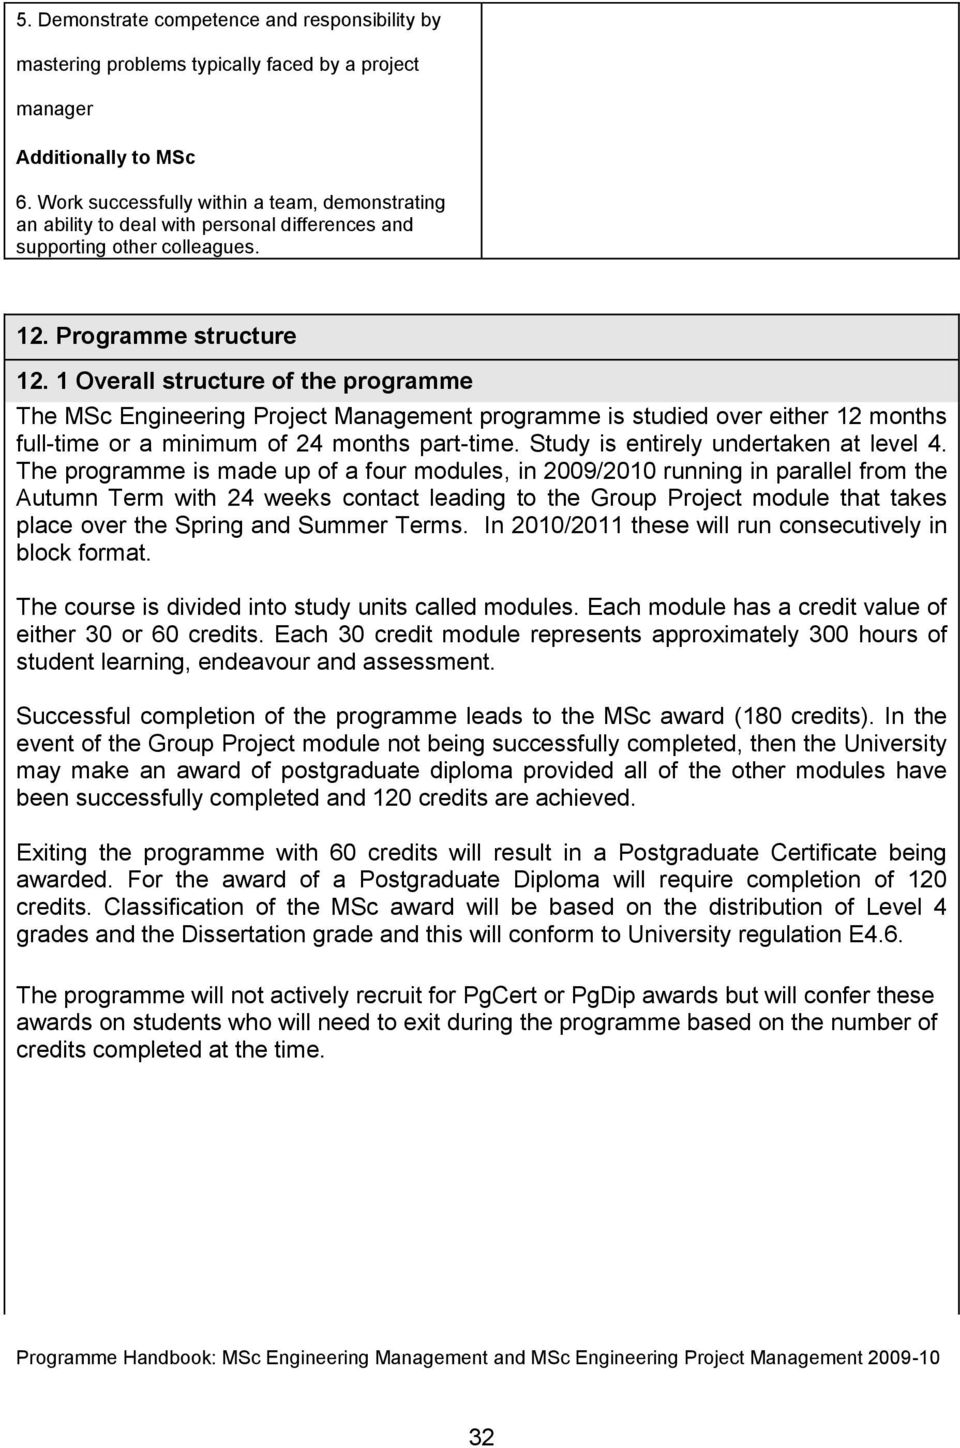 1 Overall structure of the programme The MSc Engineering Project Management programme is studied over either 12 months full-time or a minimum of 24 months part-time.